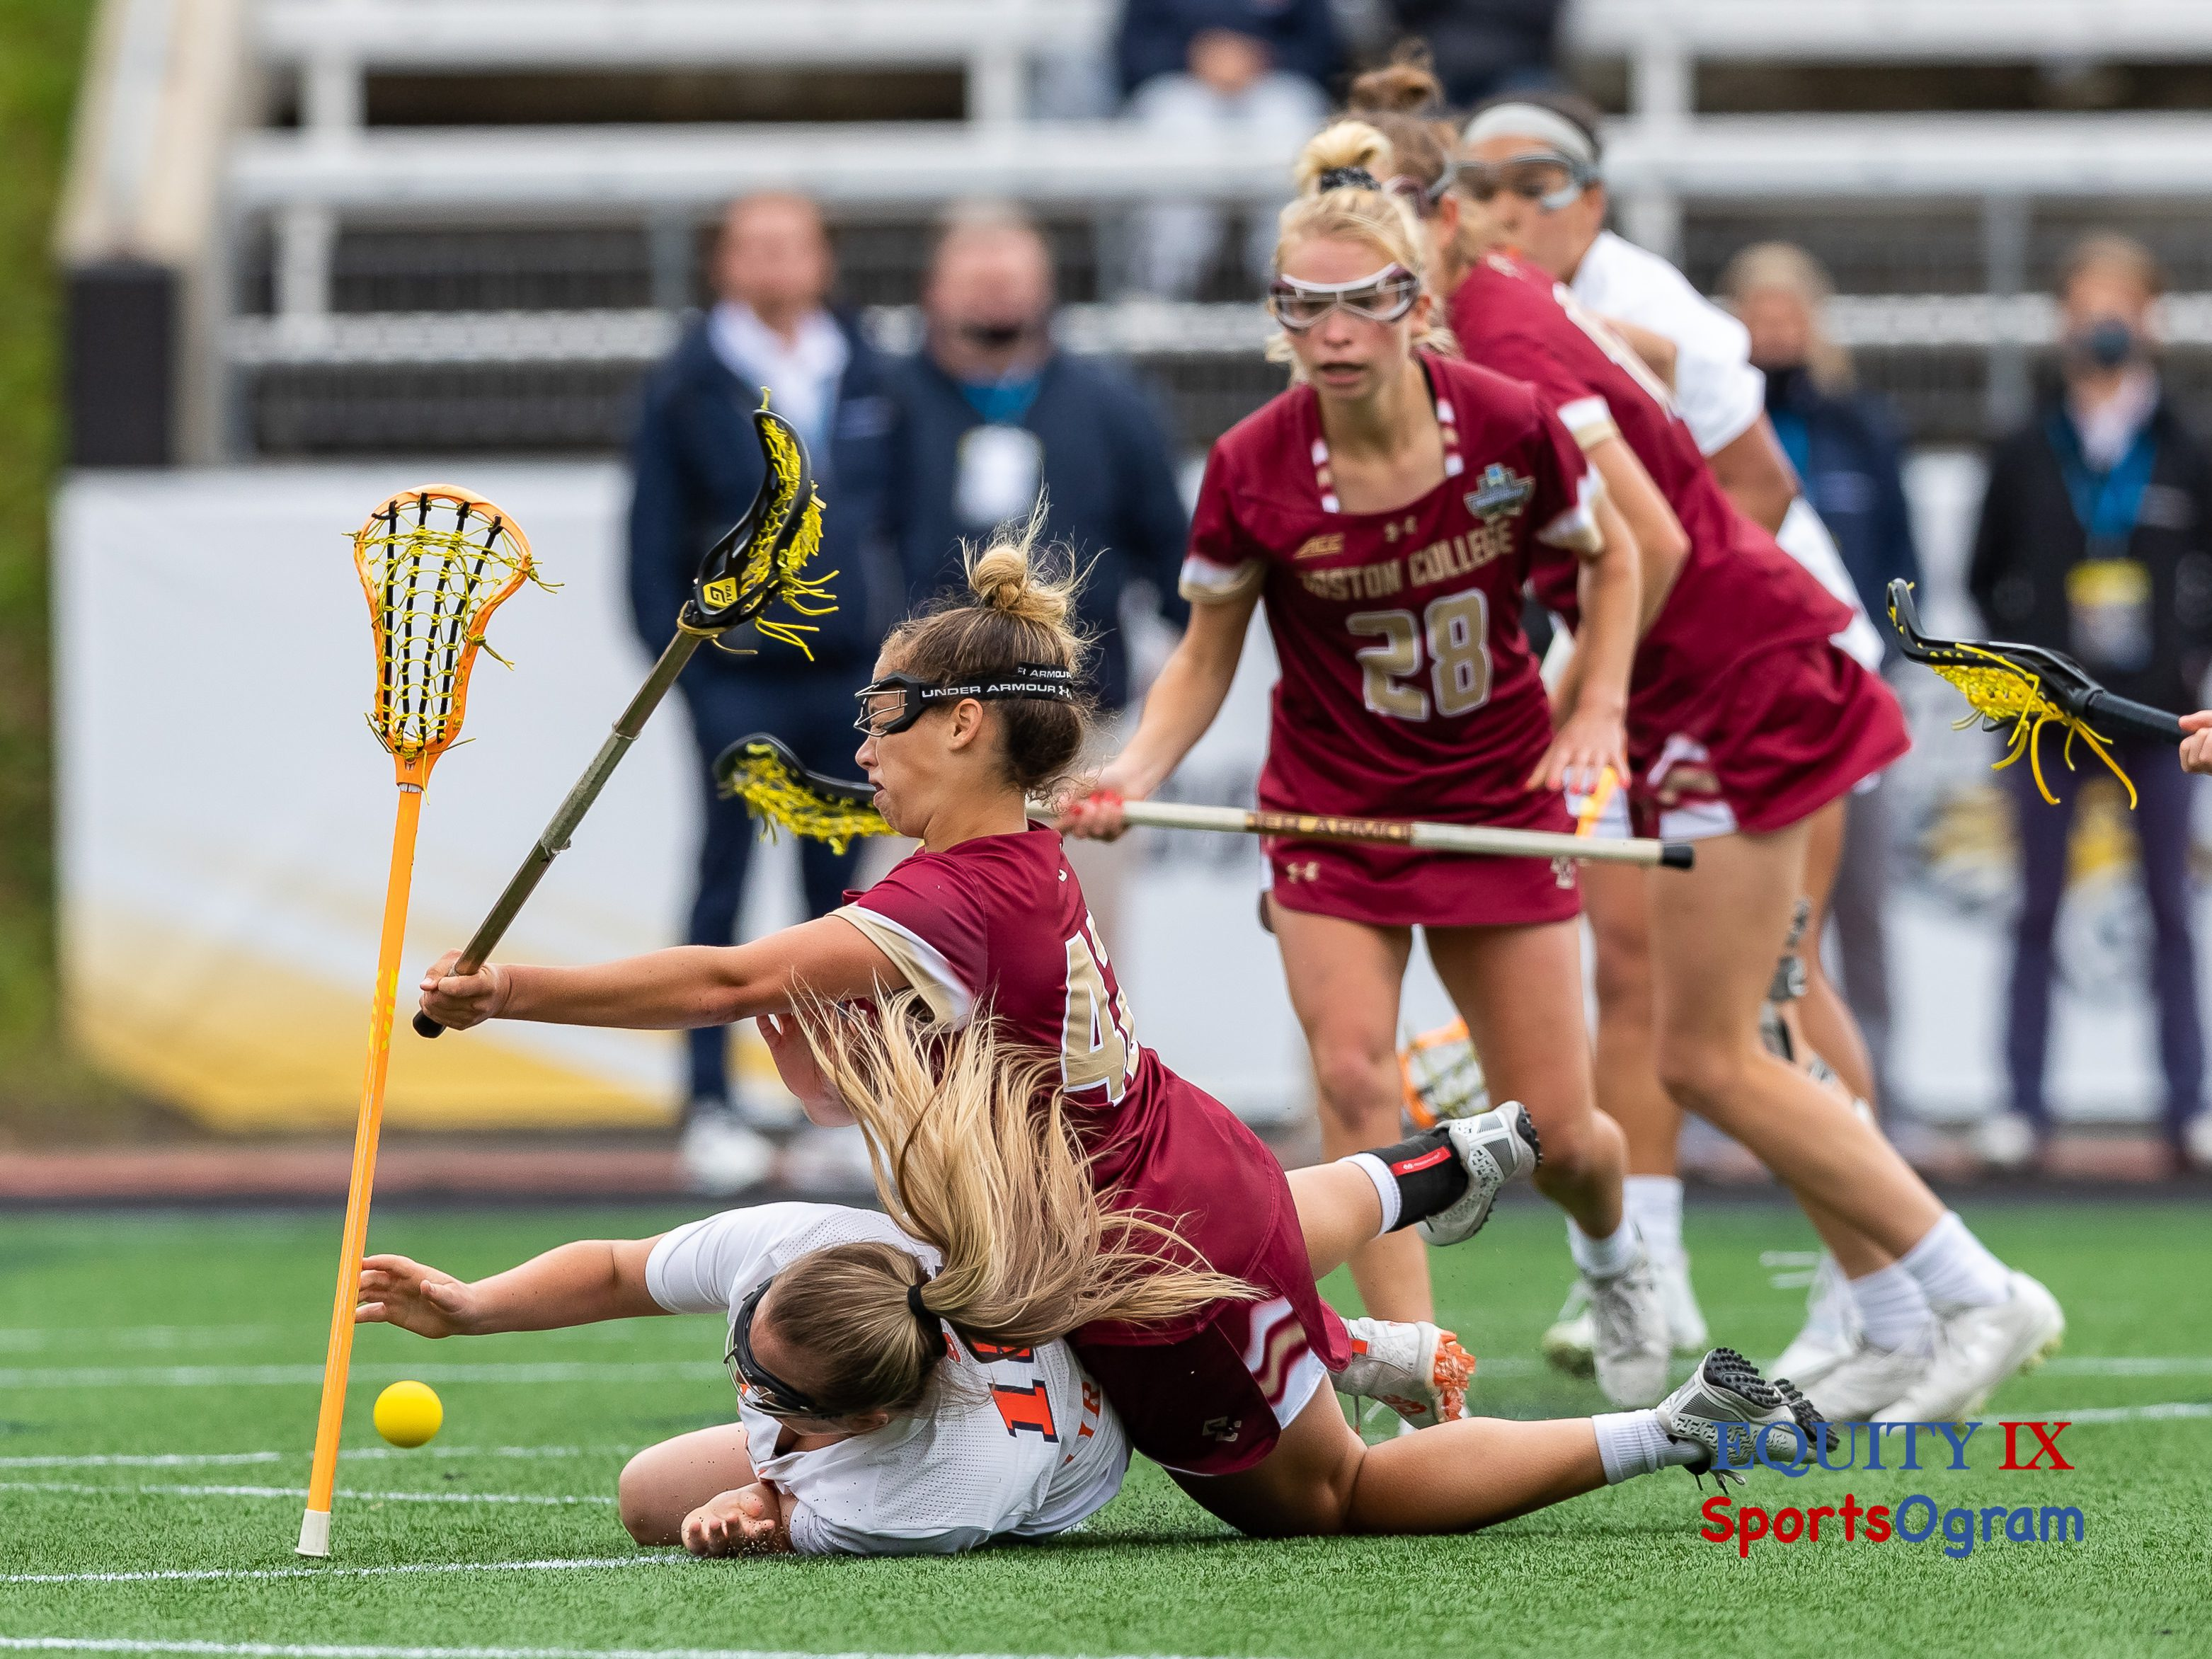 #42 Hunter Roman (Boston College) falls on top of #18 Meaghan Tyrrell (Syracuse) at the goal line of the crease both lacrosse sticks falling out of their hands and the yellow lacrosse ball bouncing in the crease - 2021 NCAA Women's Lacrosse National Championship © Equity IX - SportsOgram - Leigh Ernst Friestedt